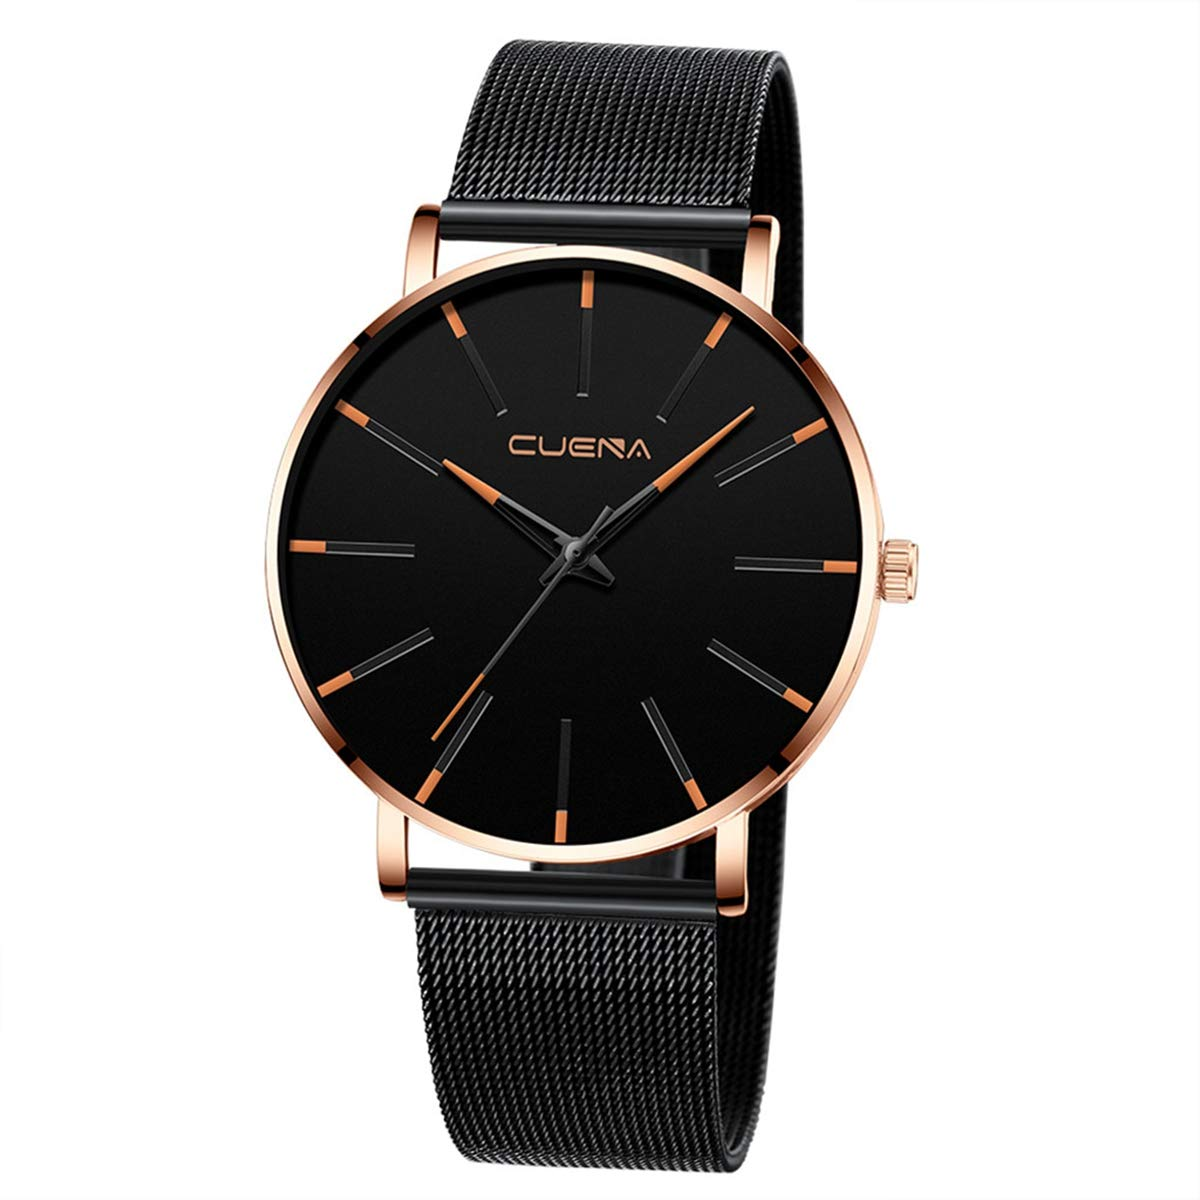 ZODRQ Men's Watch,Fashion Watches Stainless Steel Mesh Wrist Watch Casual Wristwatch Quartz Watch for Men Gift (E) by ZODRQ